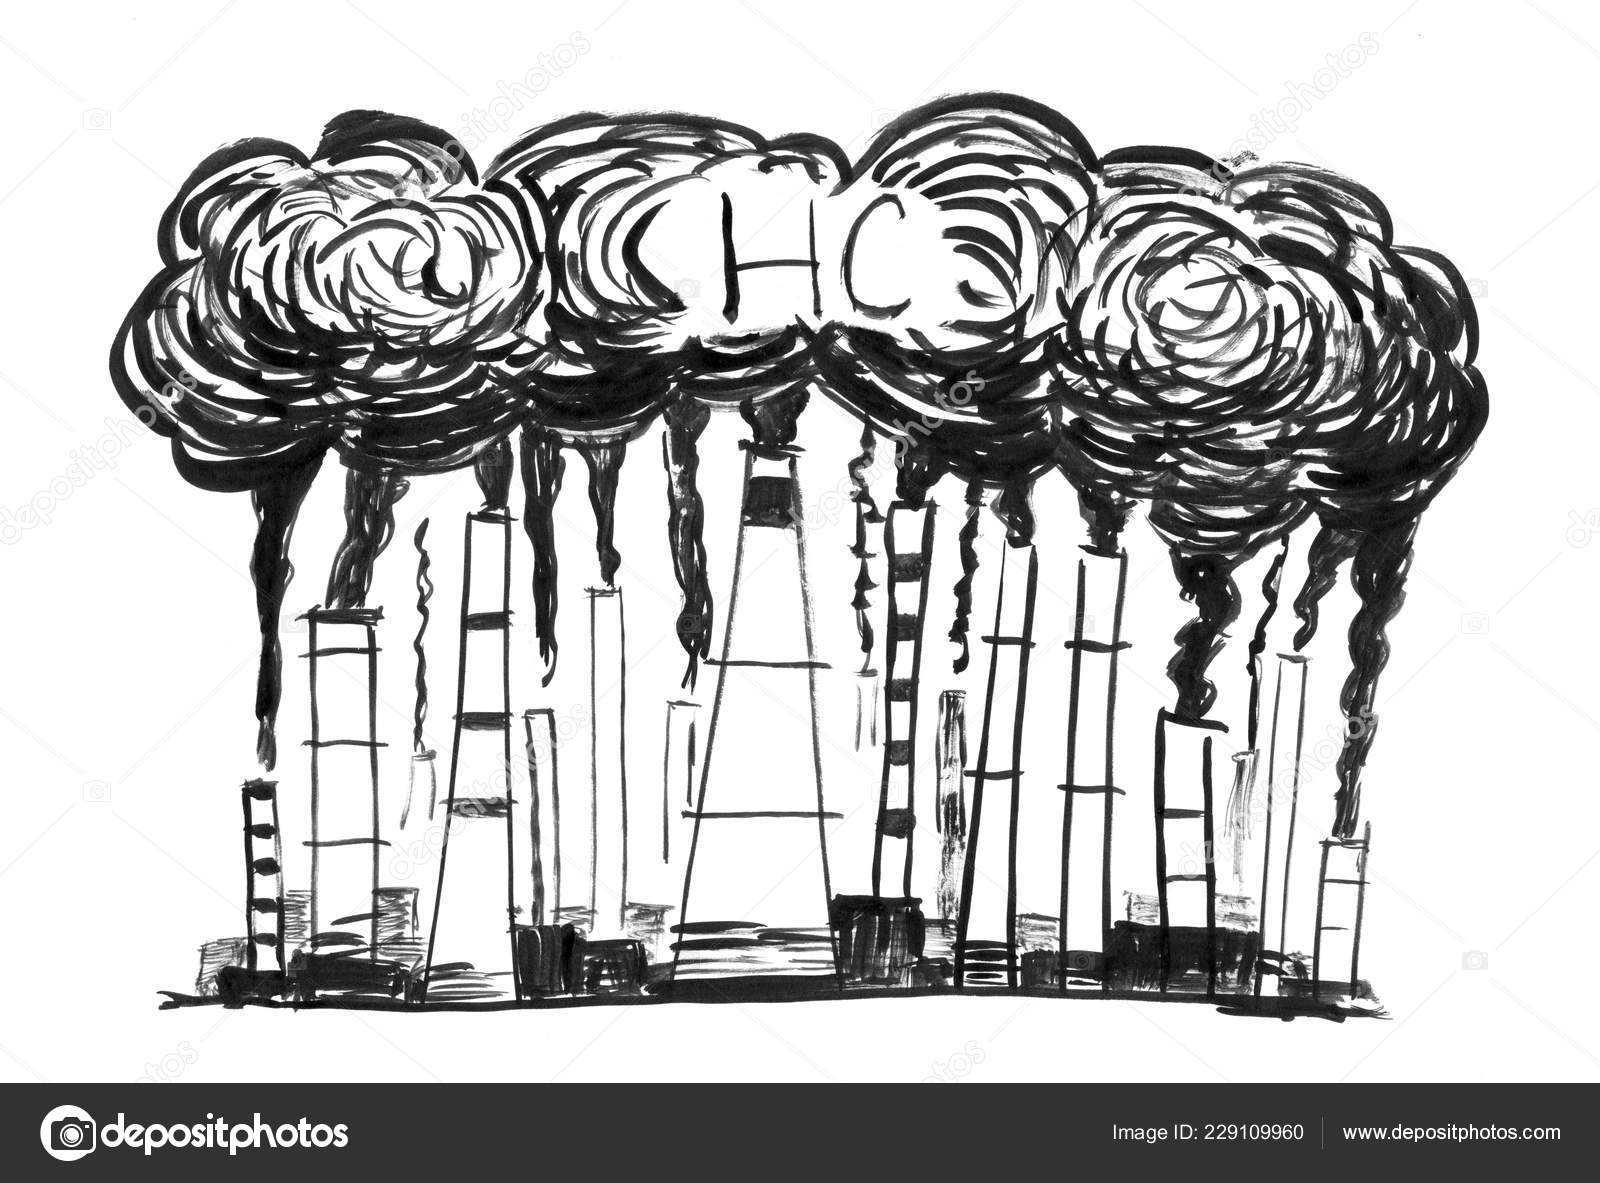 Pictures smokestacks black ink grunge hand drawing of